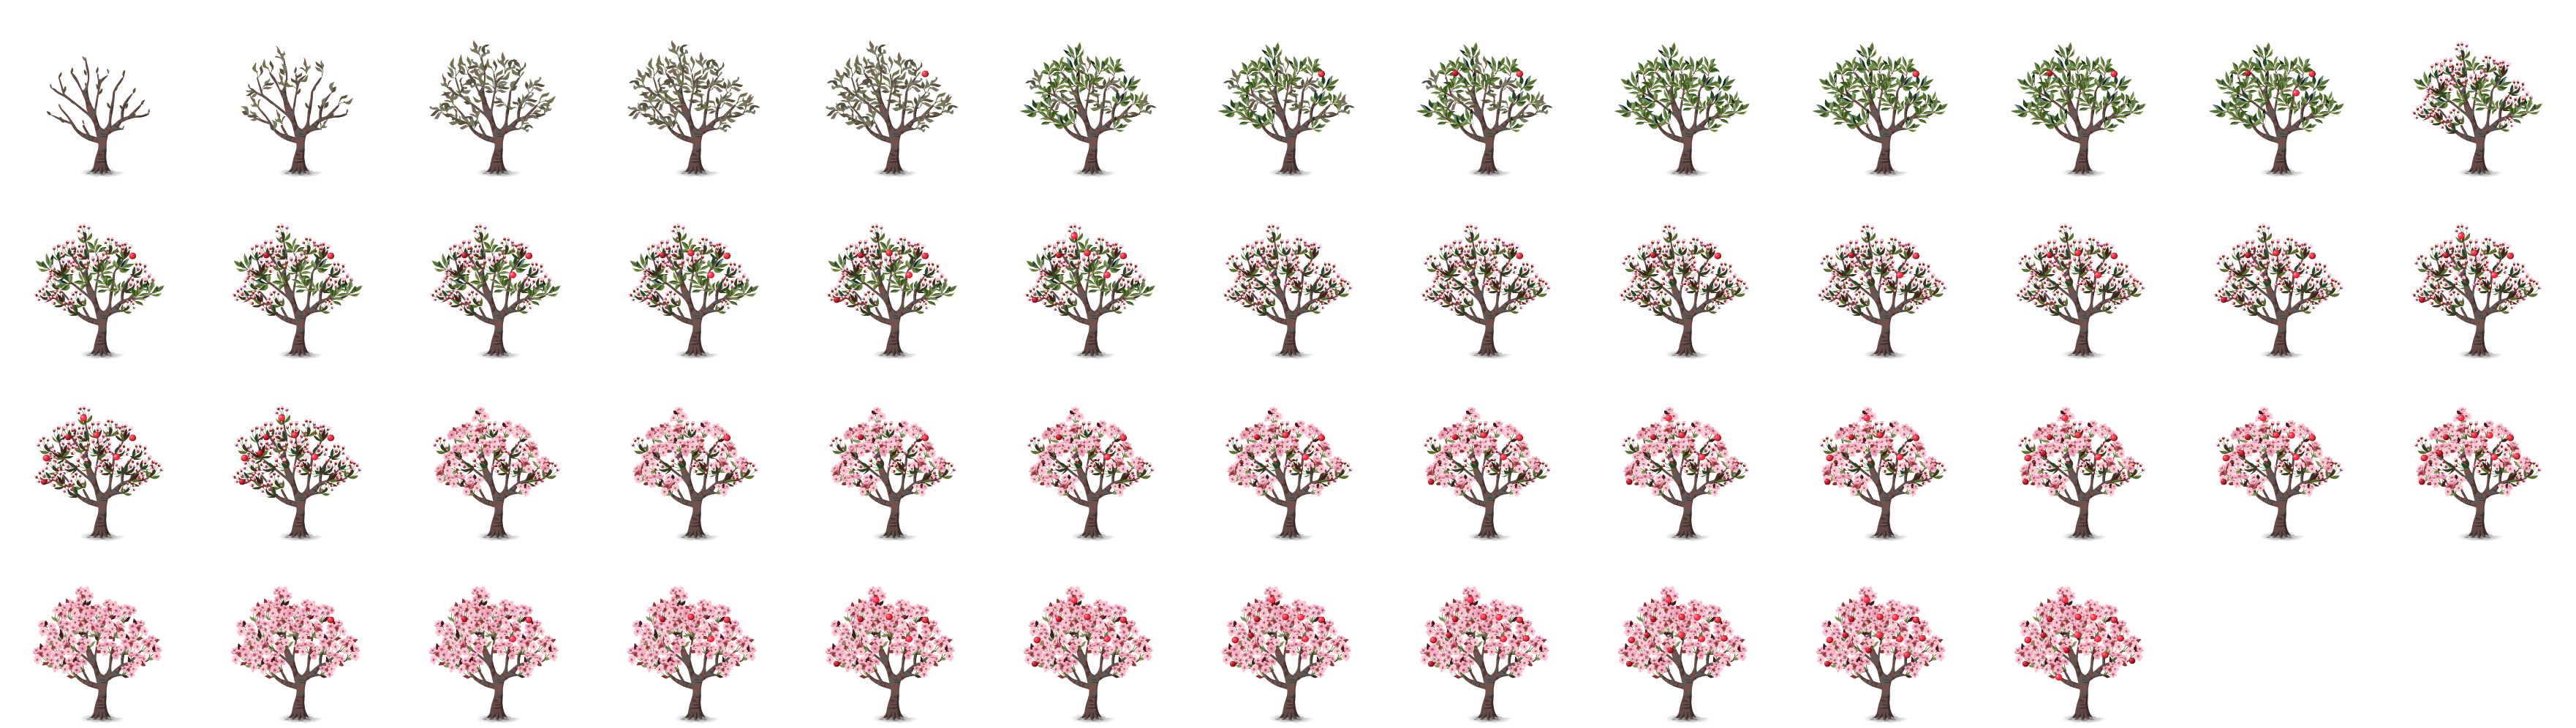 Flower sprite png. Fruit tree items glitch